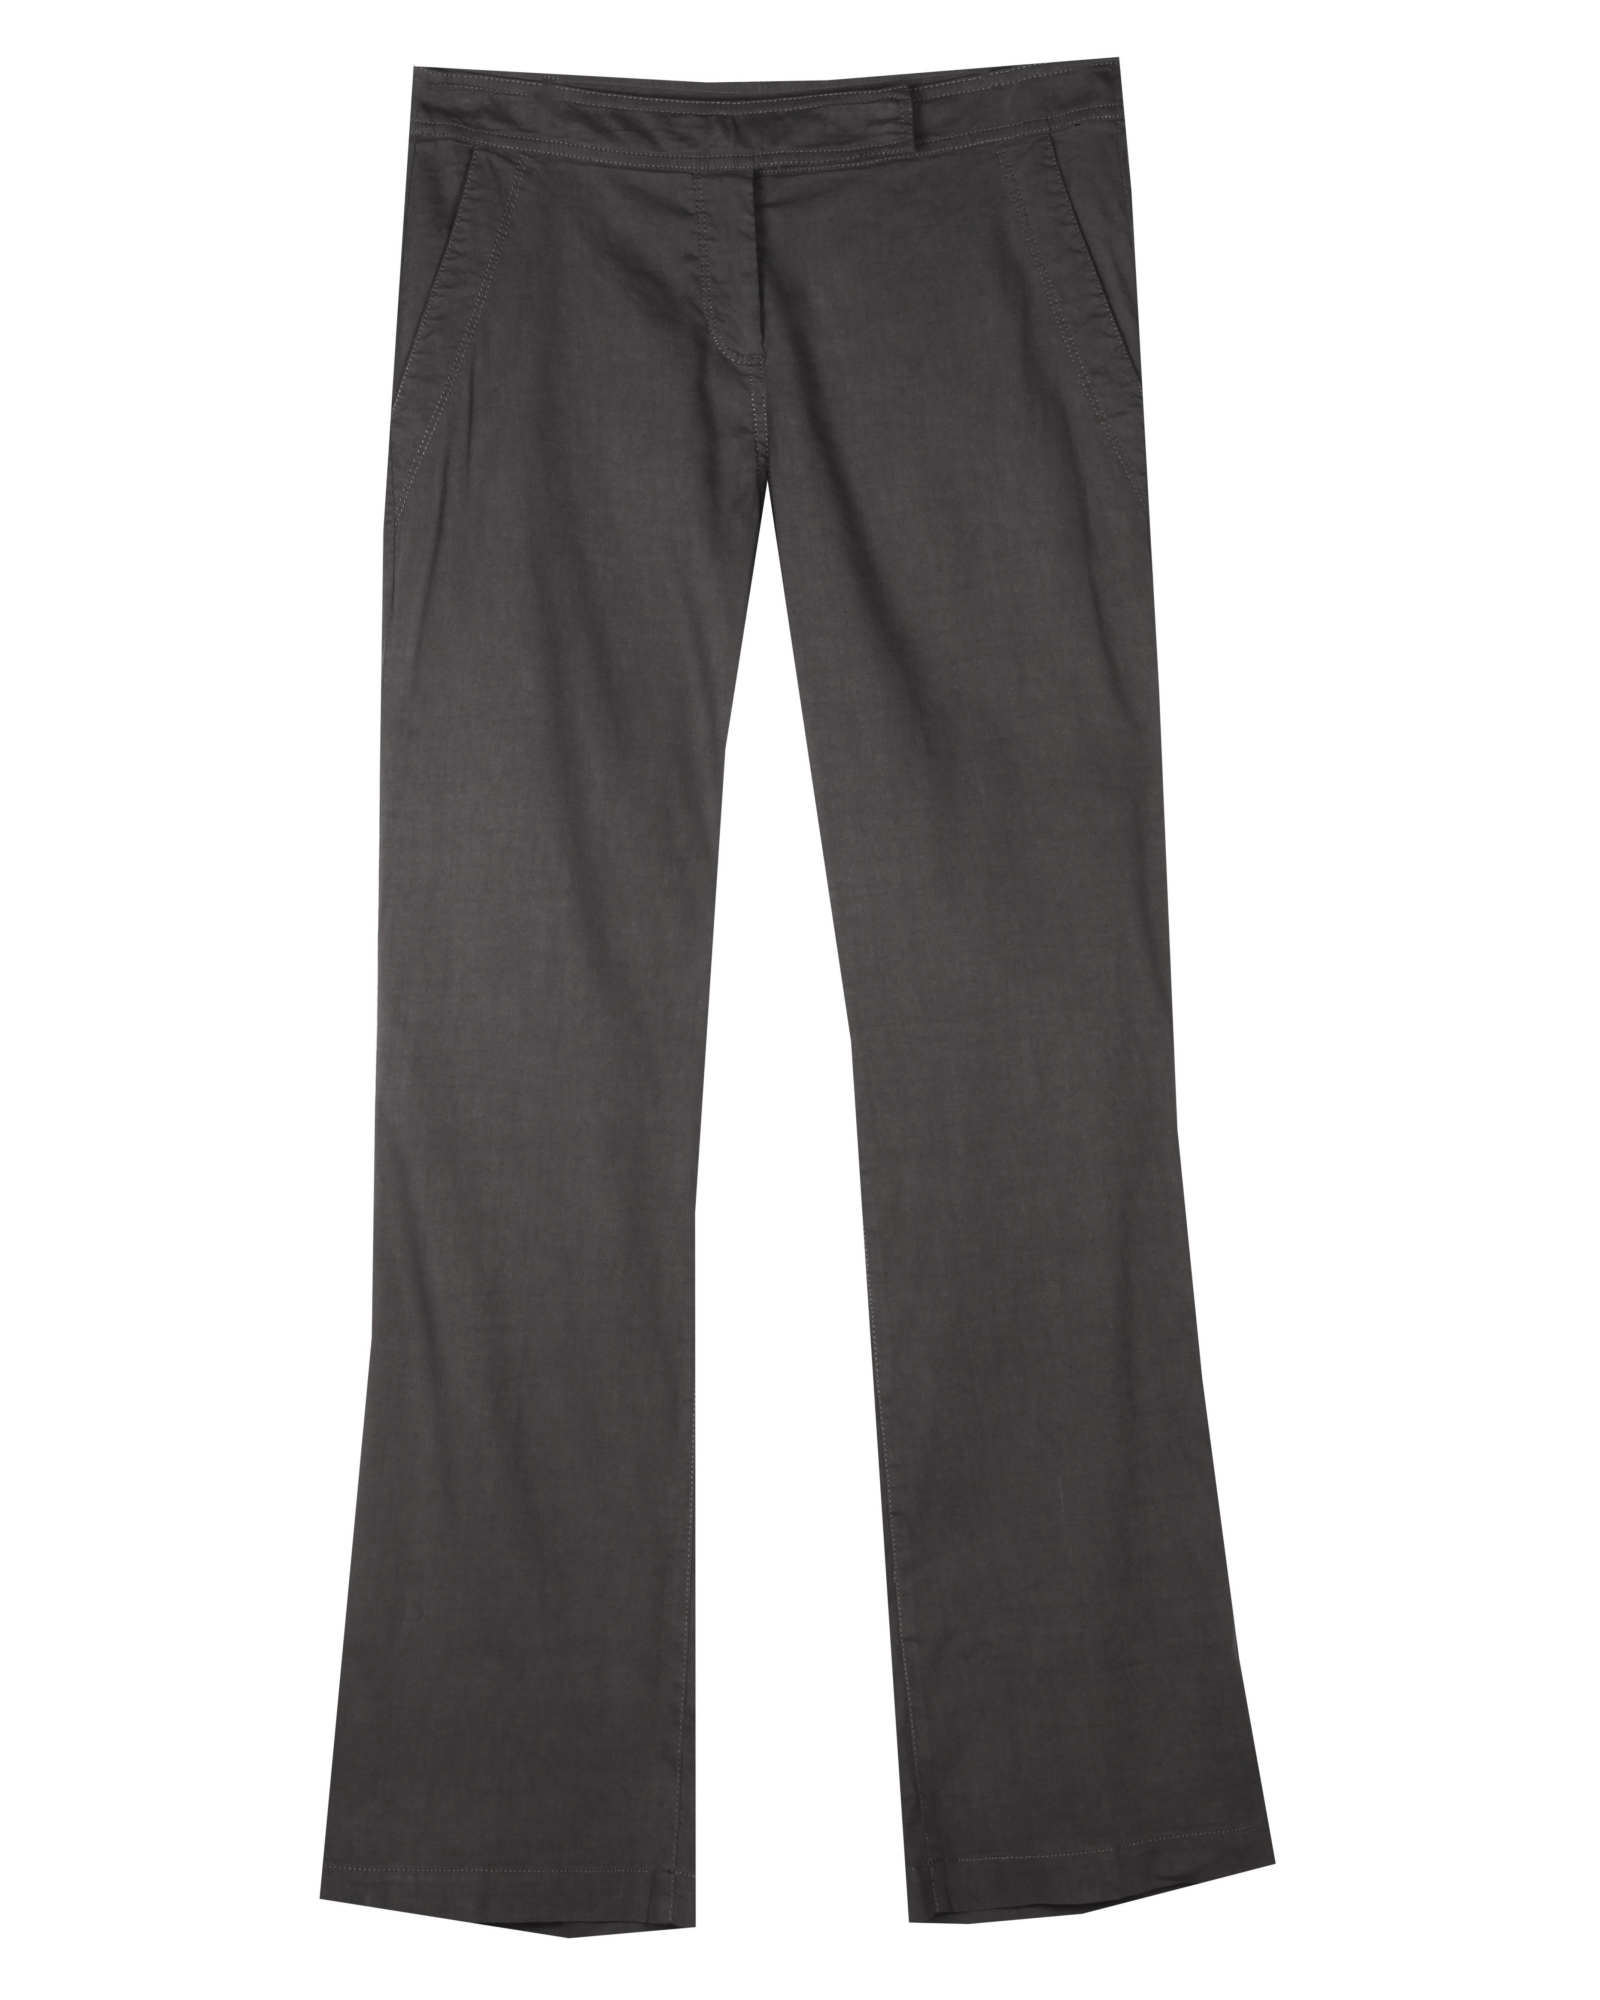 Linen Viscose Stretch Pant